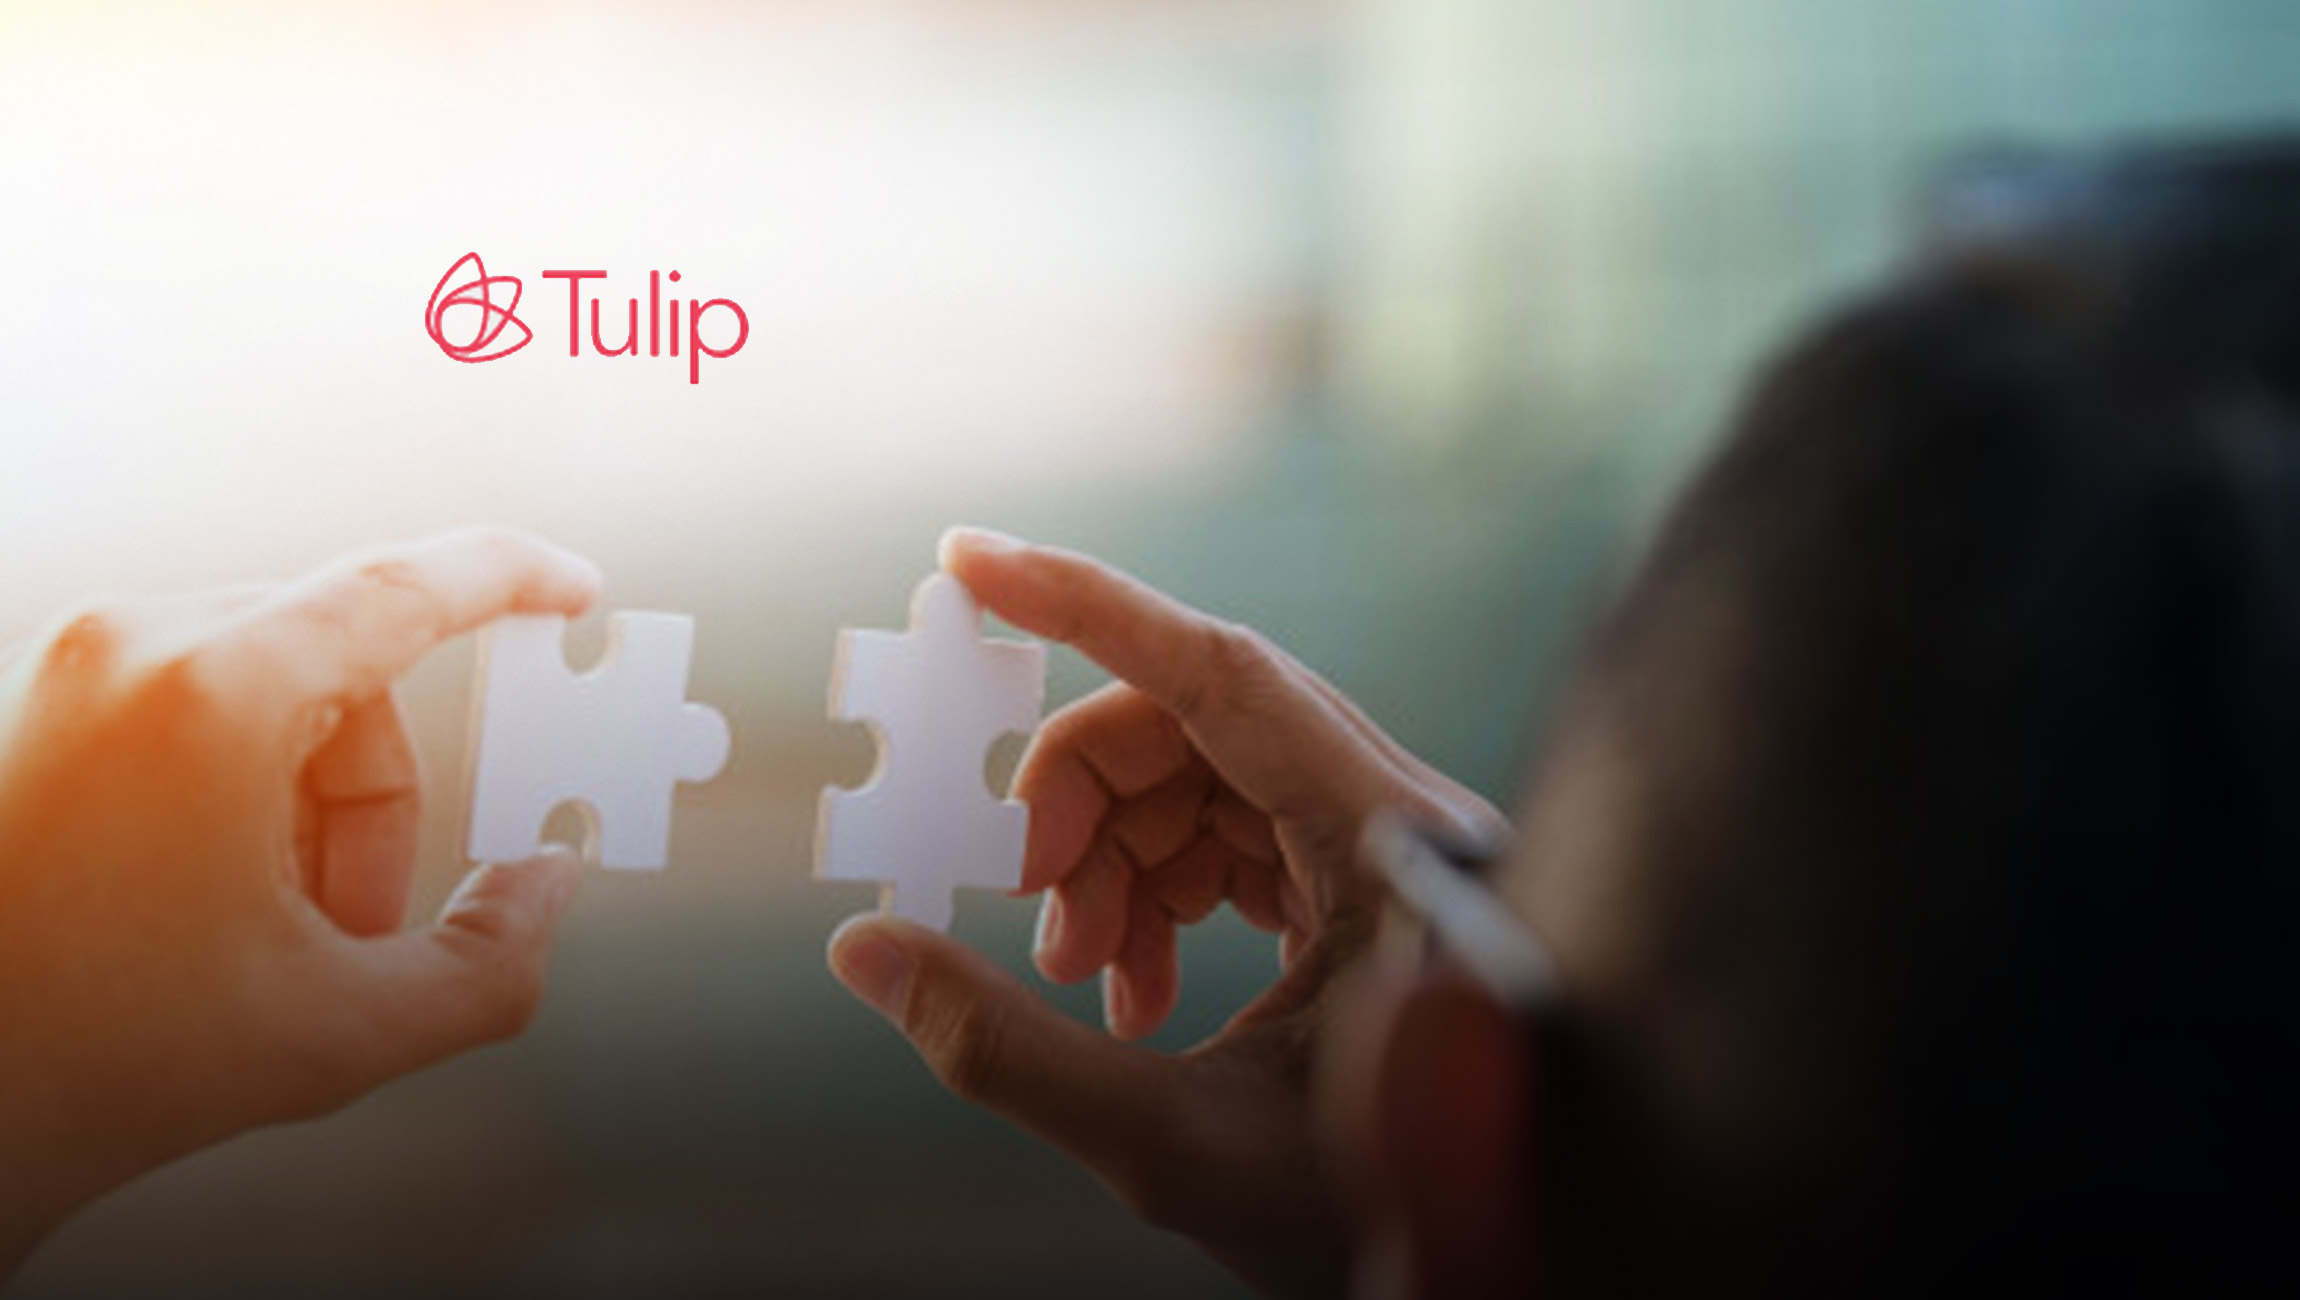 Tulip Acquires Timekit to Further Expand Retail Mobile Solutions and Accelerate Innovation